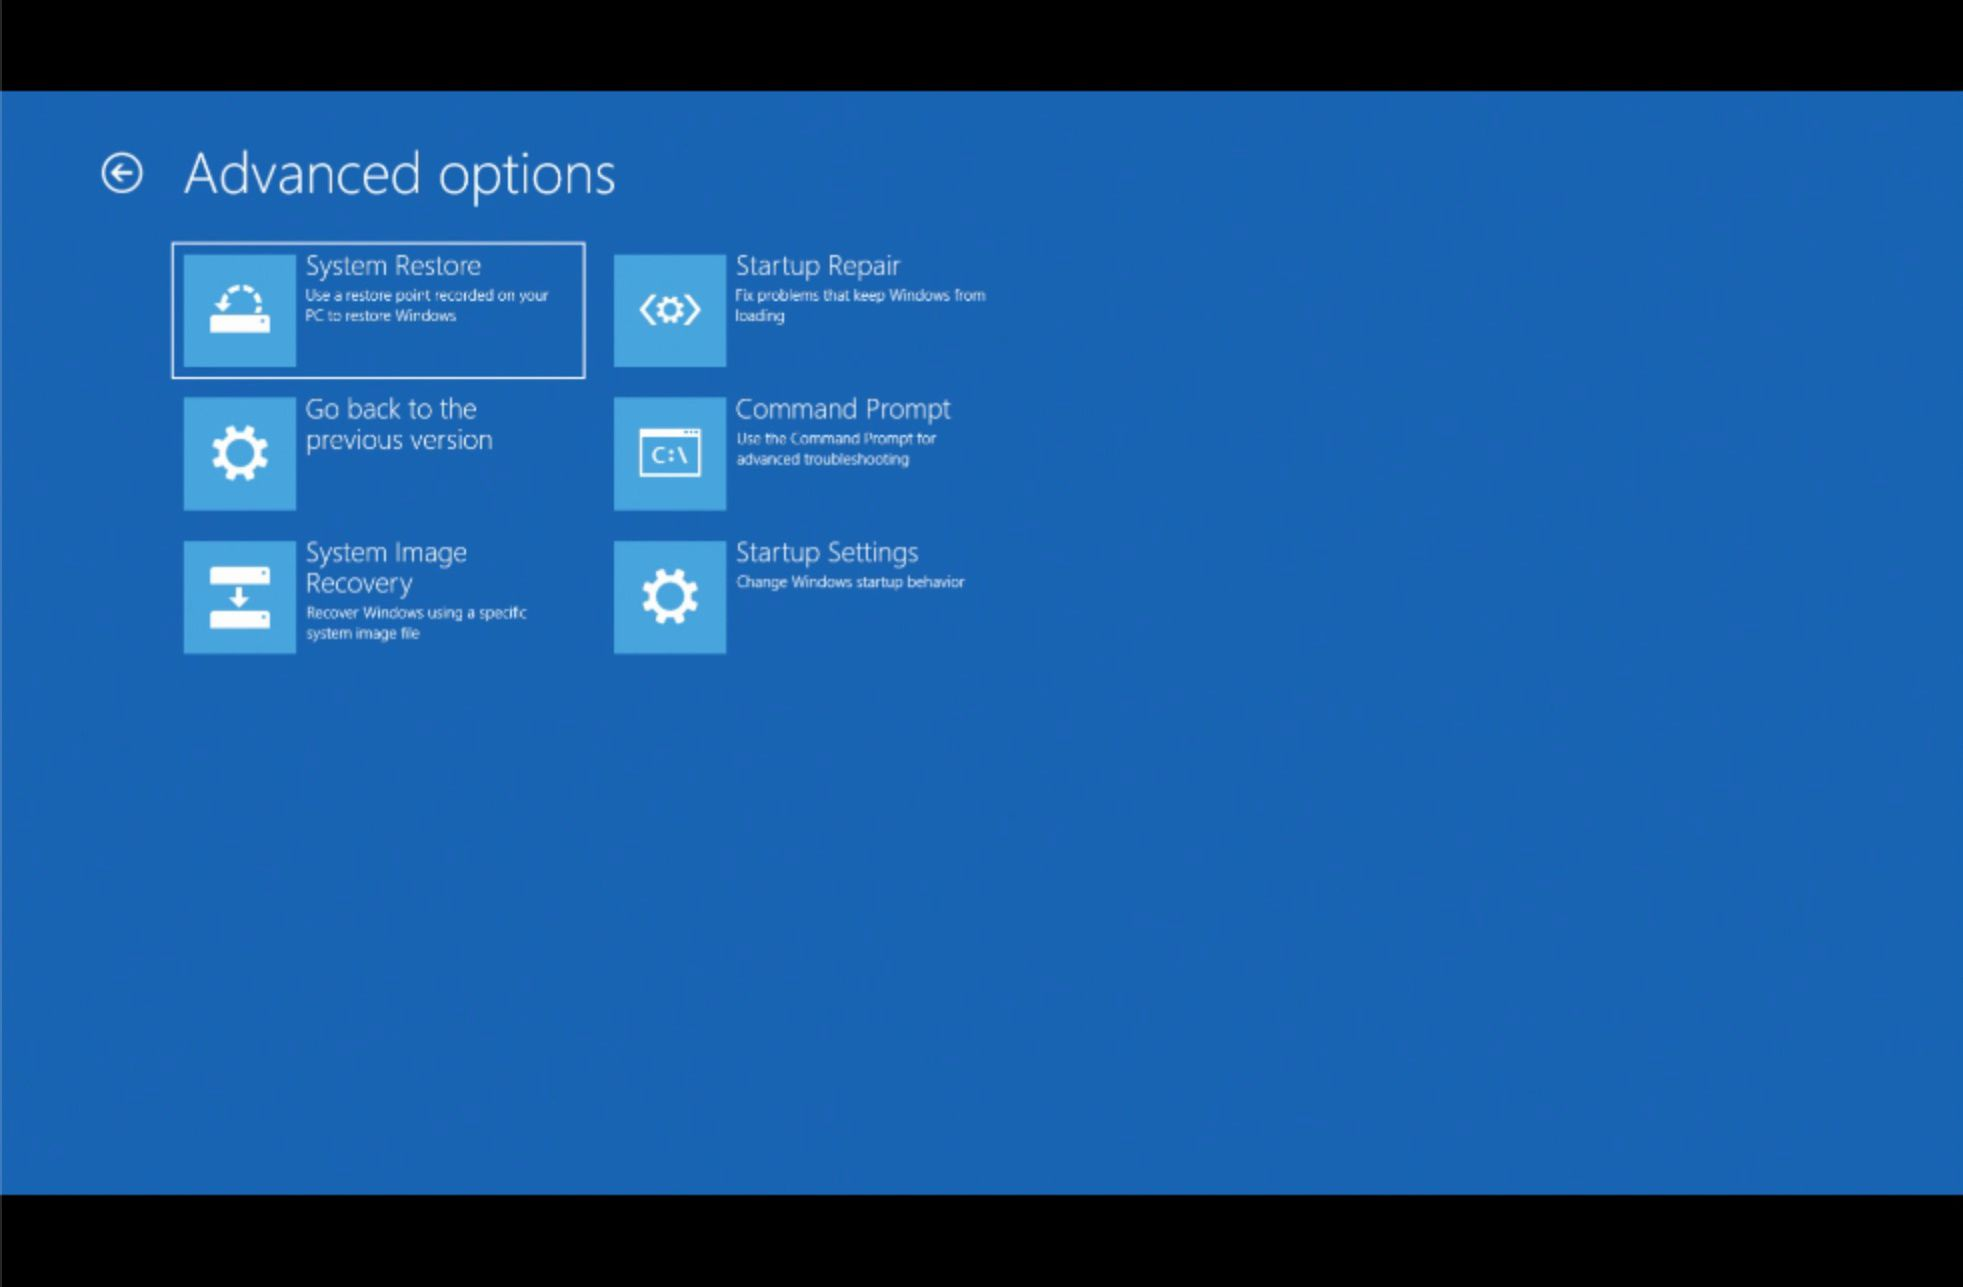 Windows Update Stuck or Frozen? Here's How to Fix It